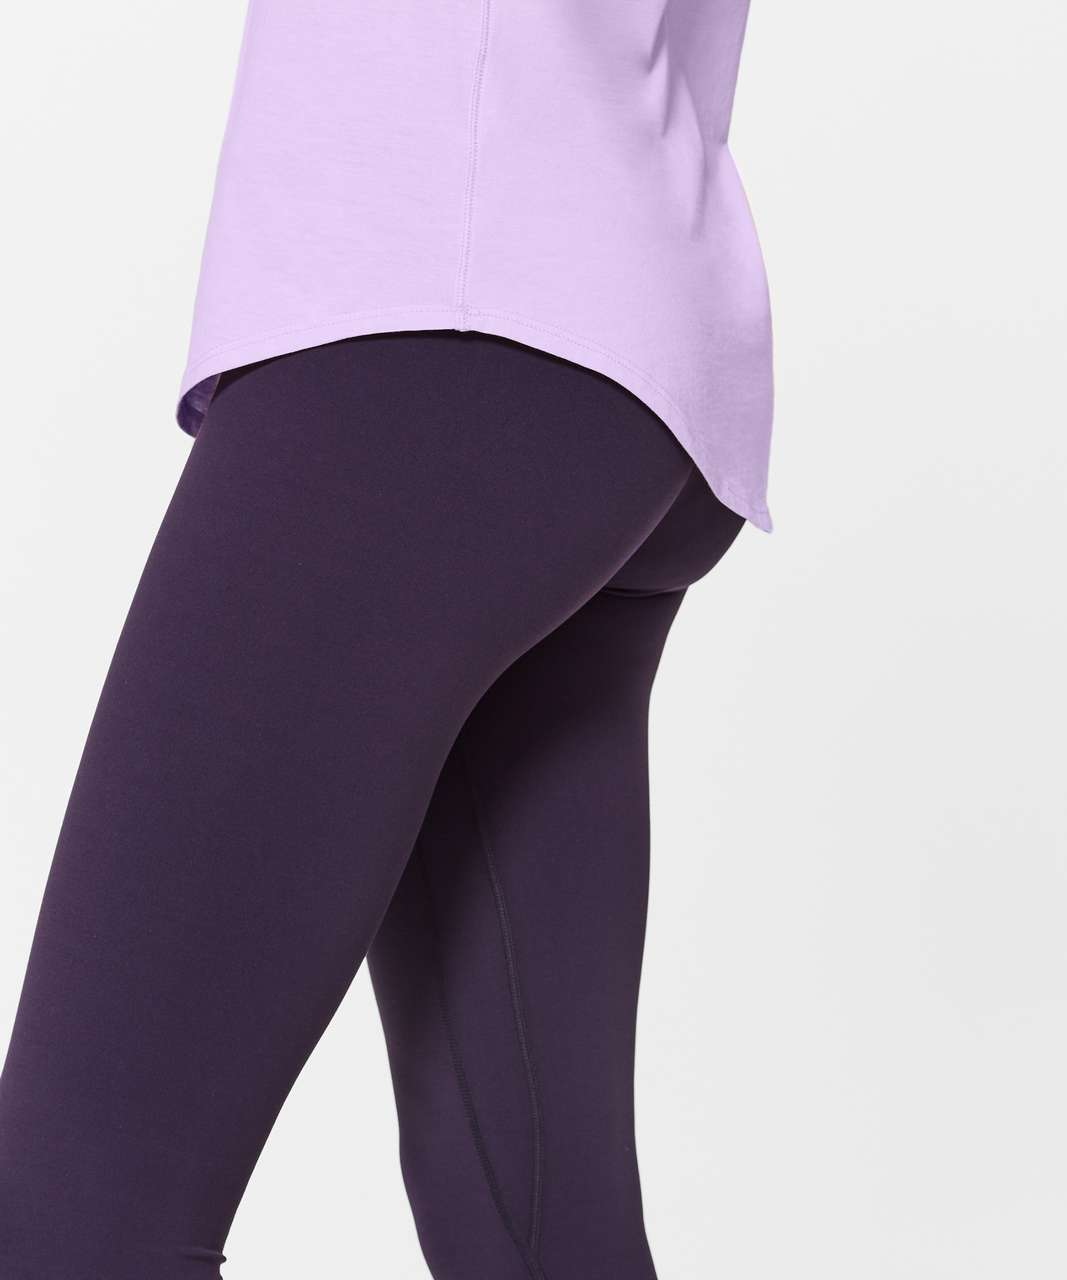 Lululemon Love Crew III - Rose Quartz